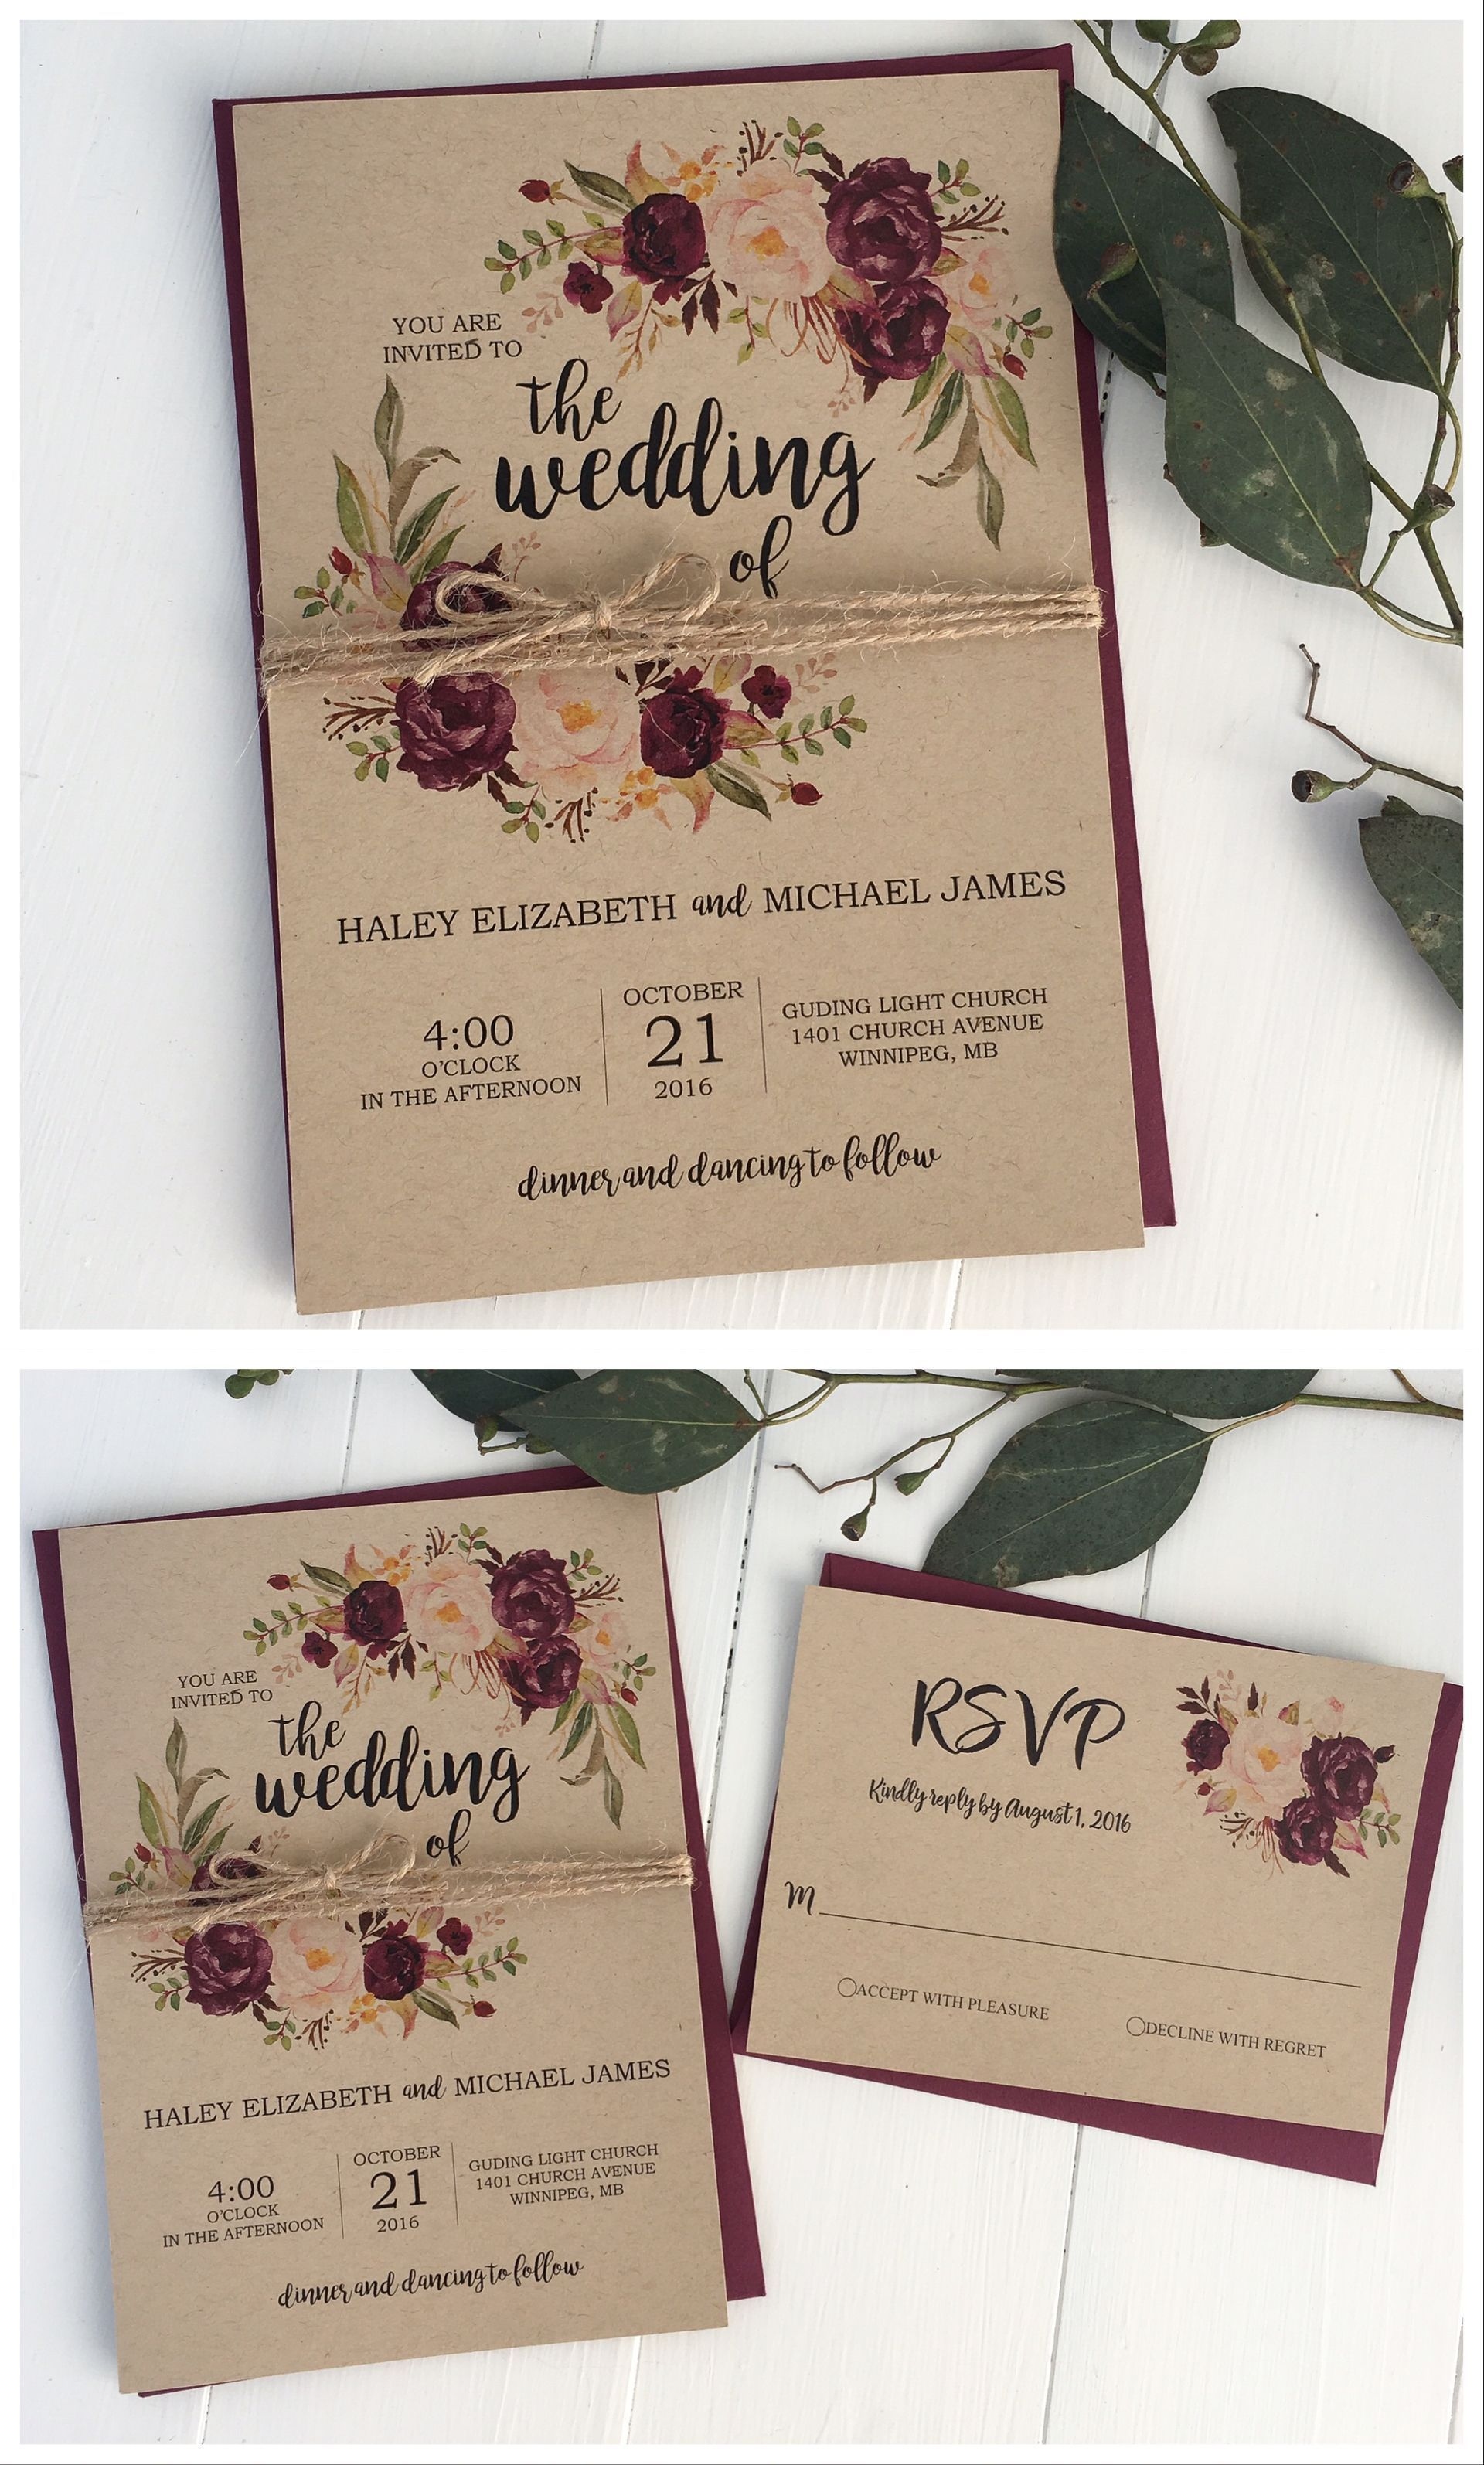 Wedding decorations at church november 2018 Rustic wedding invitation Marsala wedding invitation Burgundy